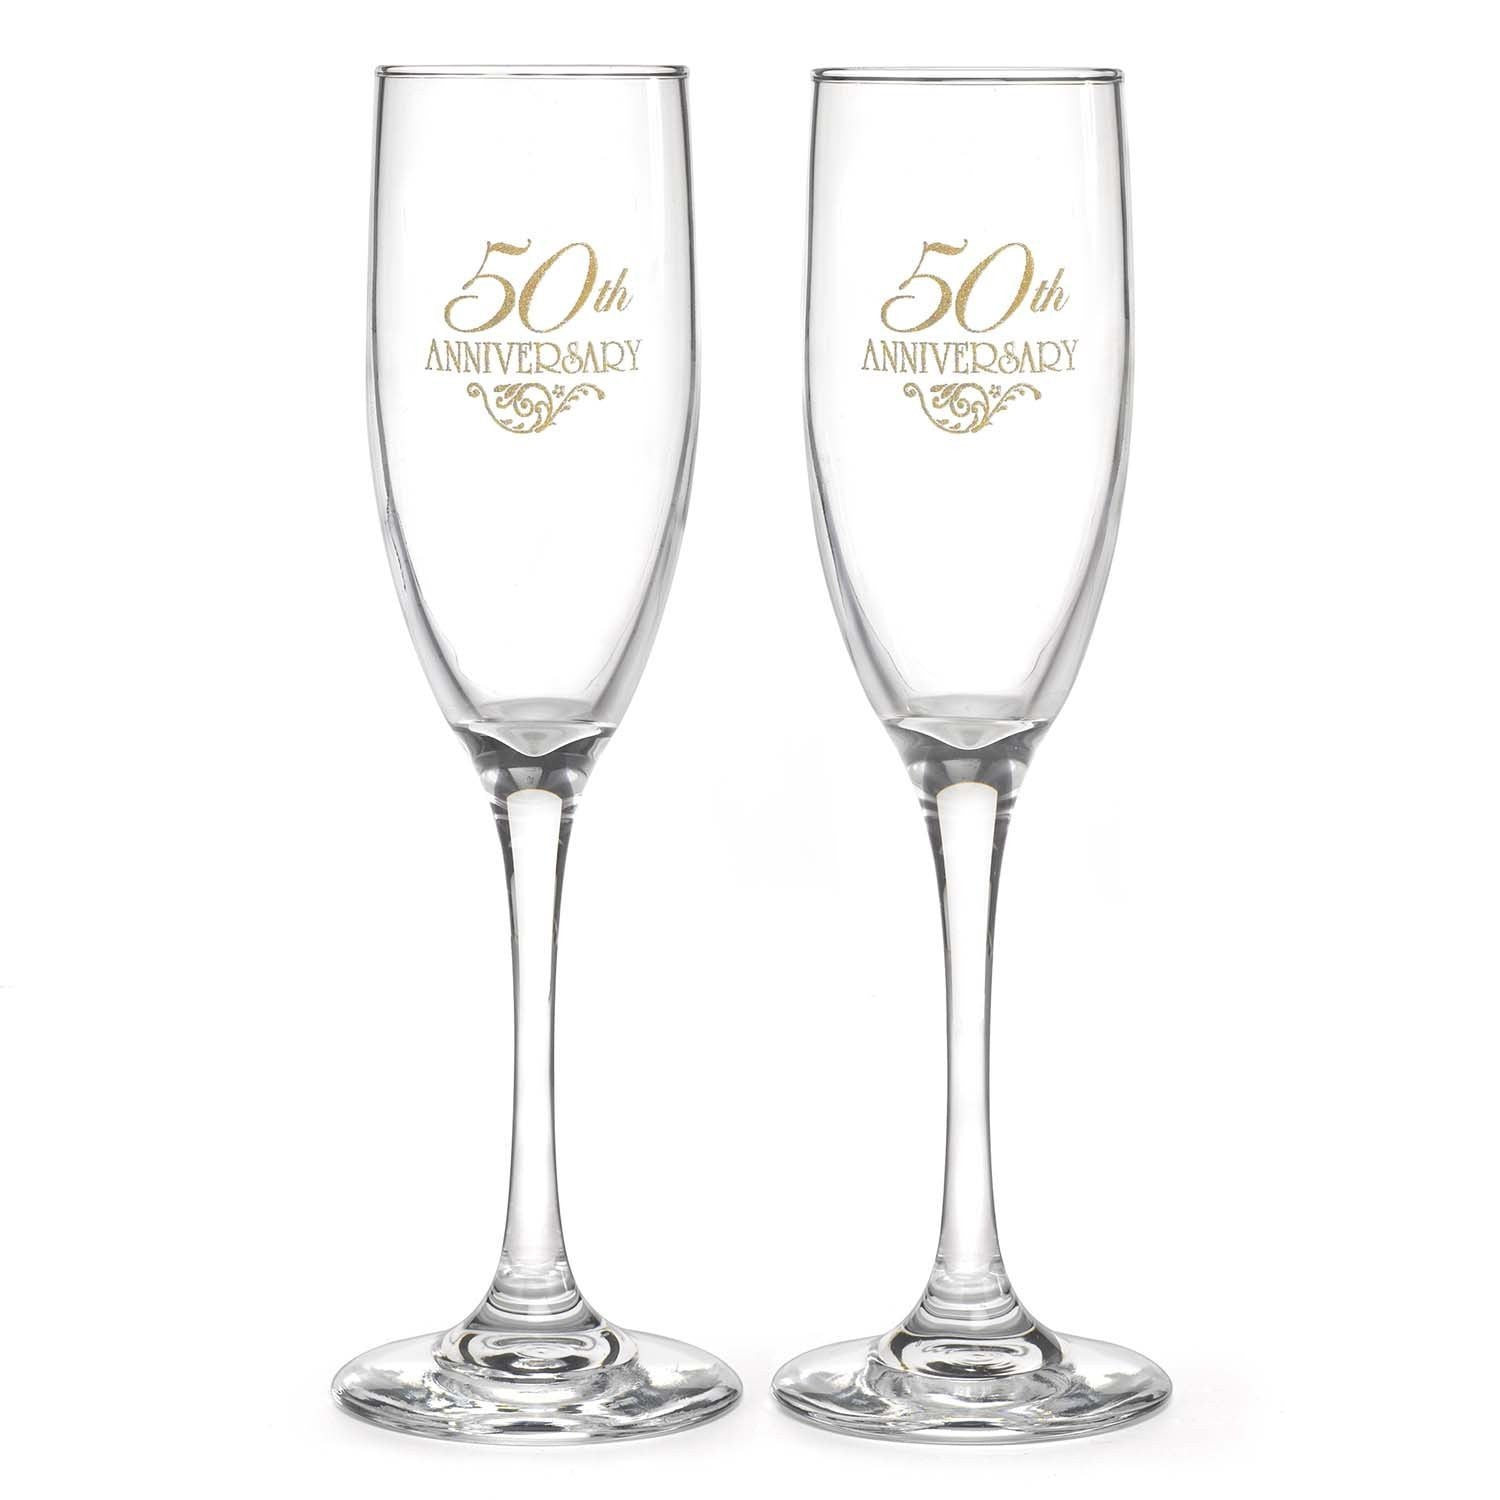 50th wedding anniversary champagne flutes. Black Bedroom Furniture Sets. Home Design Ideas